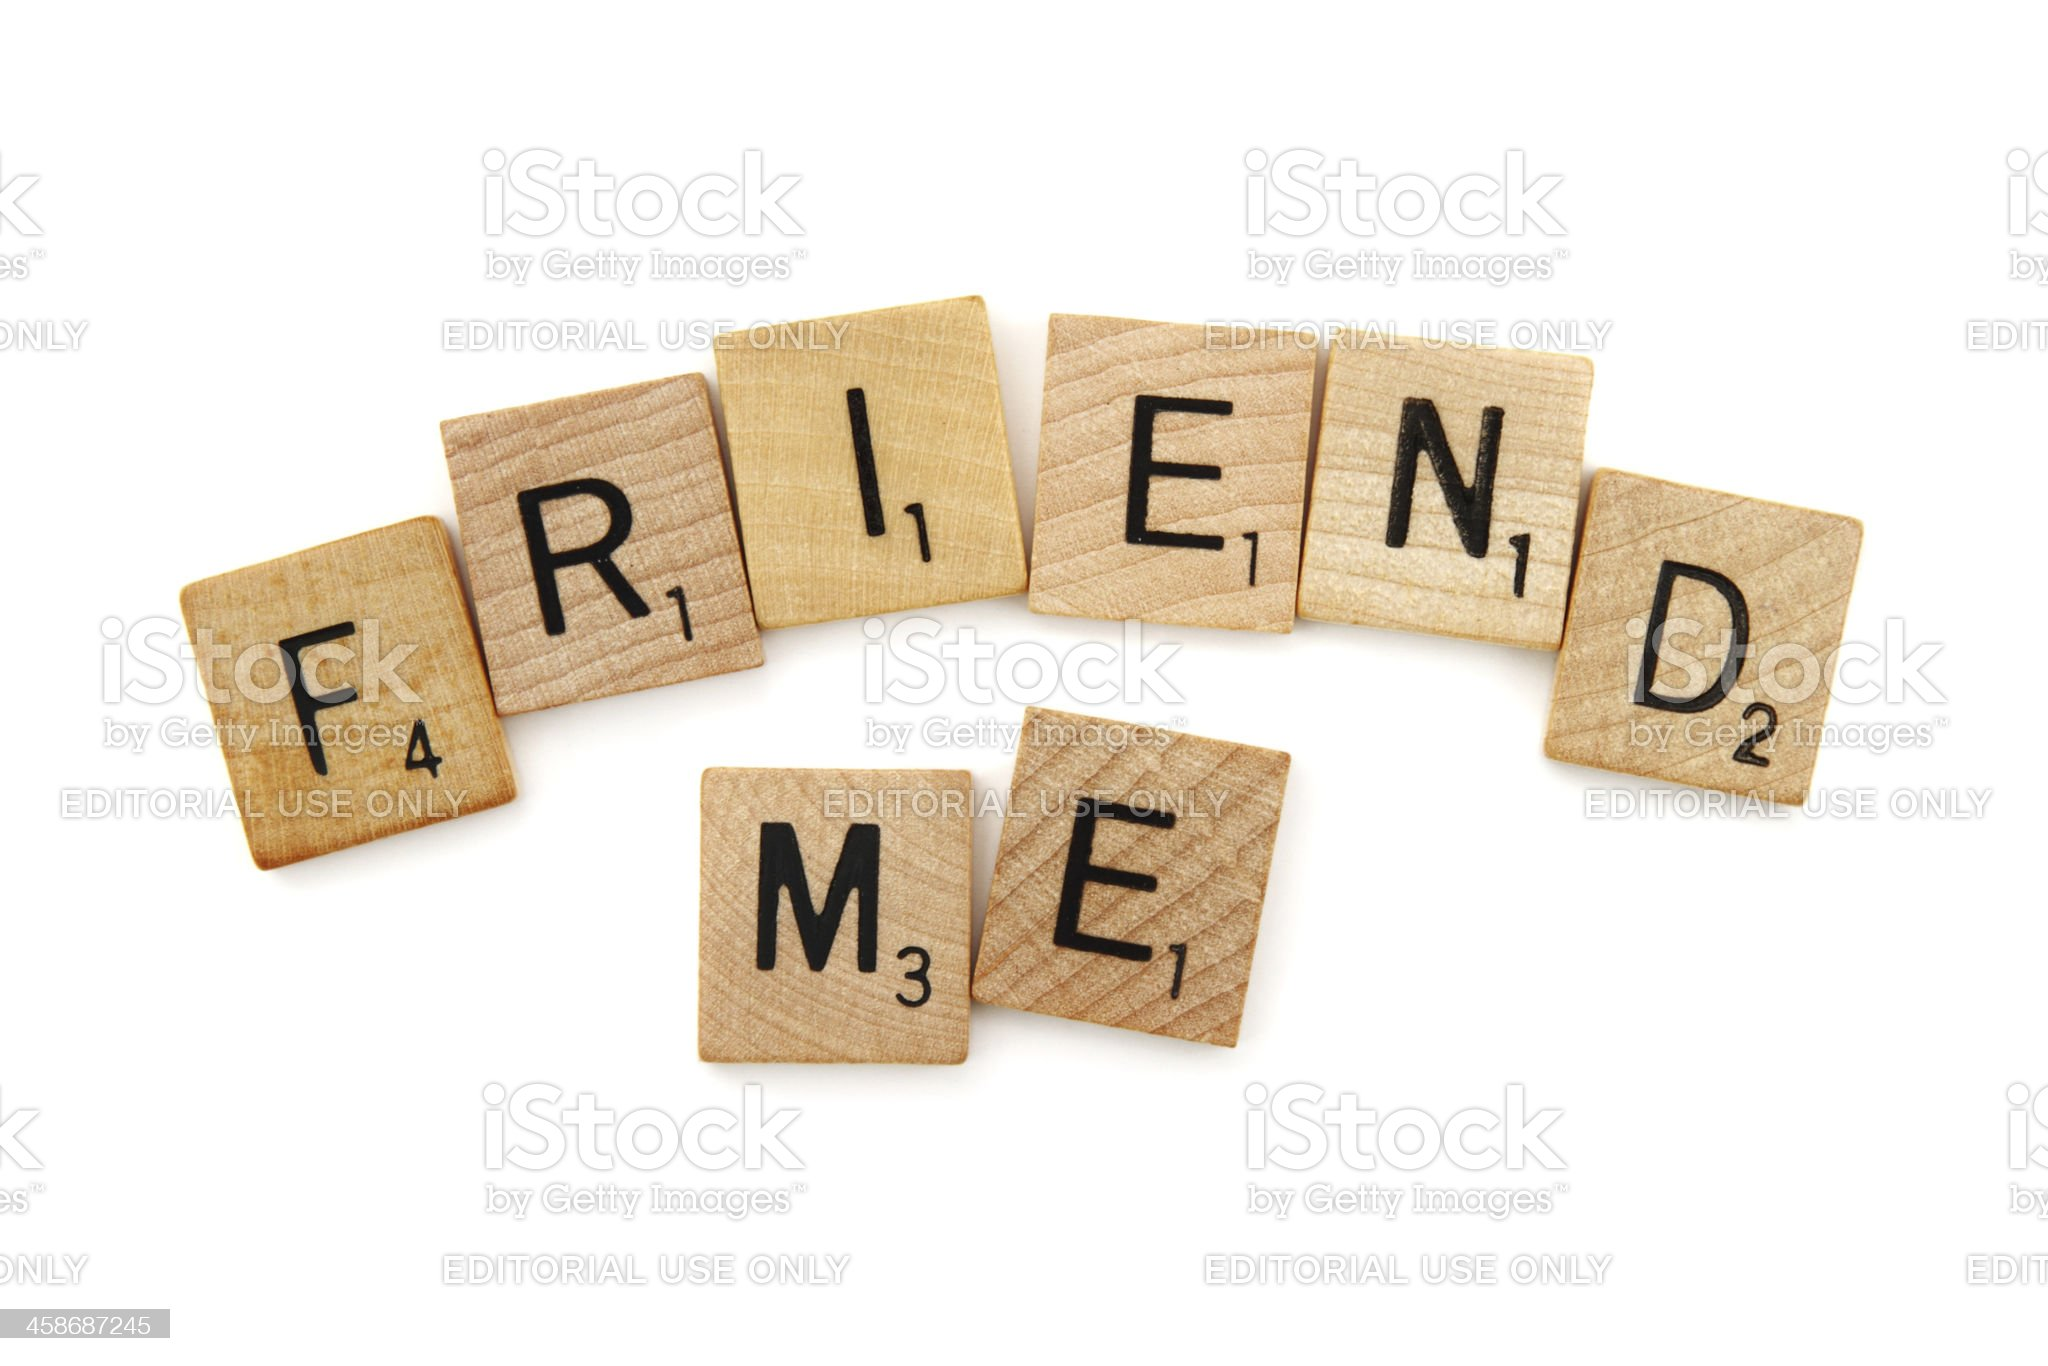 Scrabble game tiles spelling Friend Me royalty-free stock photo